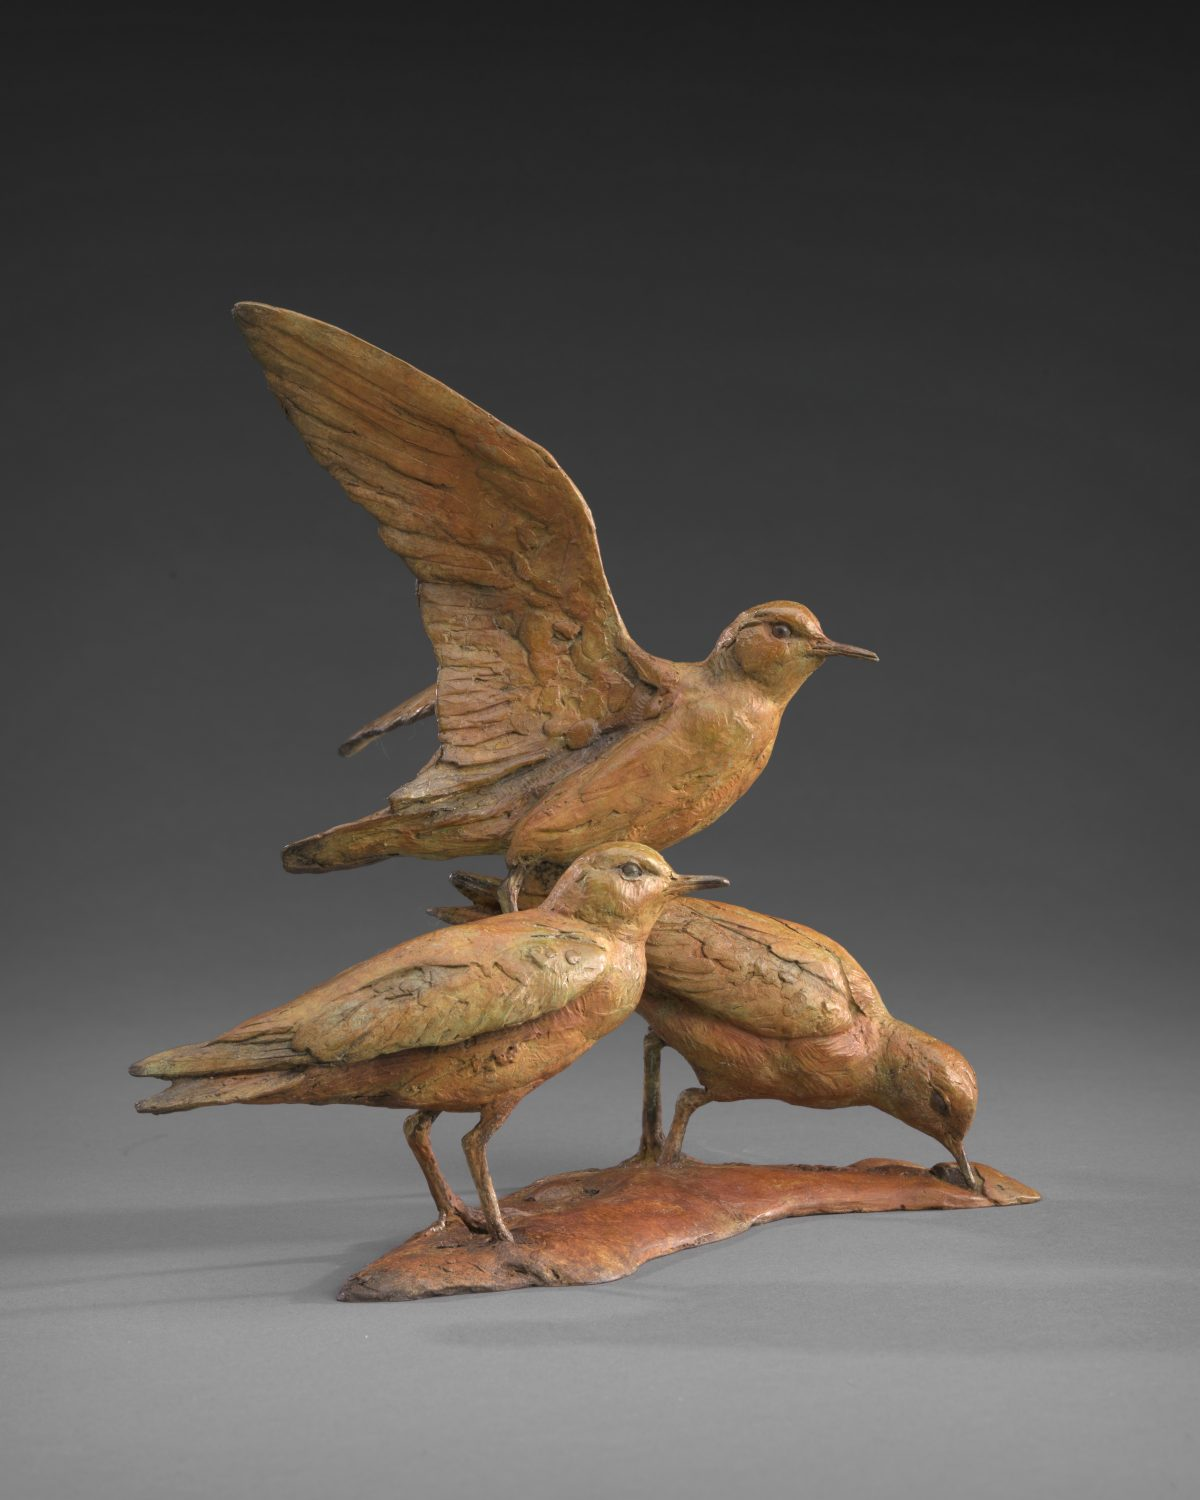 """""""Life is a Beach and then You Fly (Sandpipers)"""" by Walter Matia, Bronze Edition 12/24, 9.5 by 10 by 9 inches. (Courtesy of Tim Newton)"""